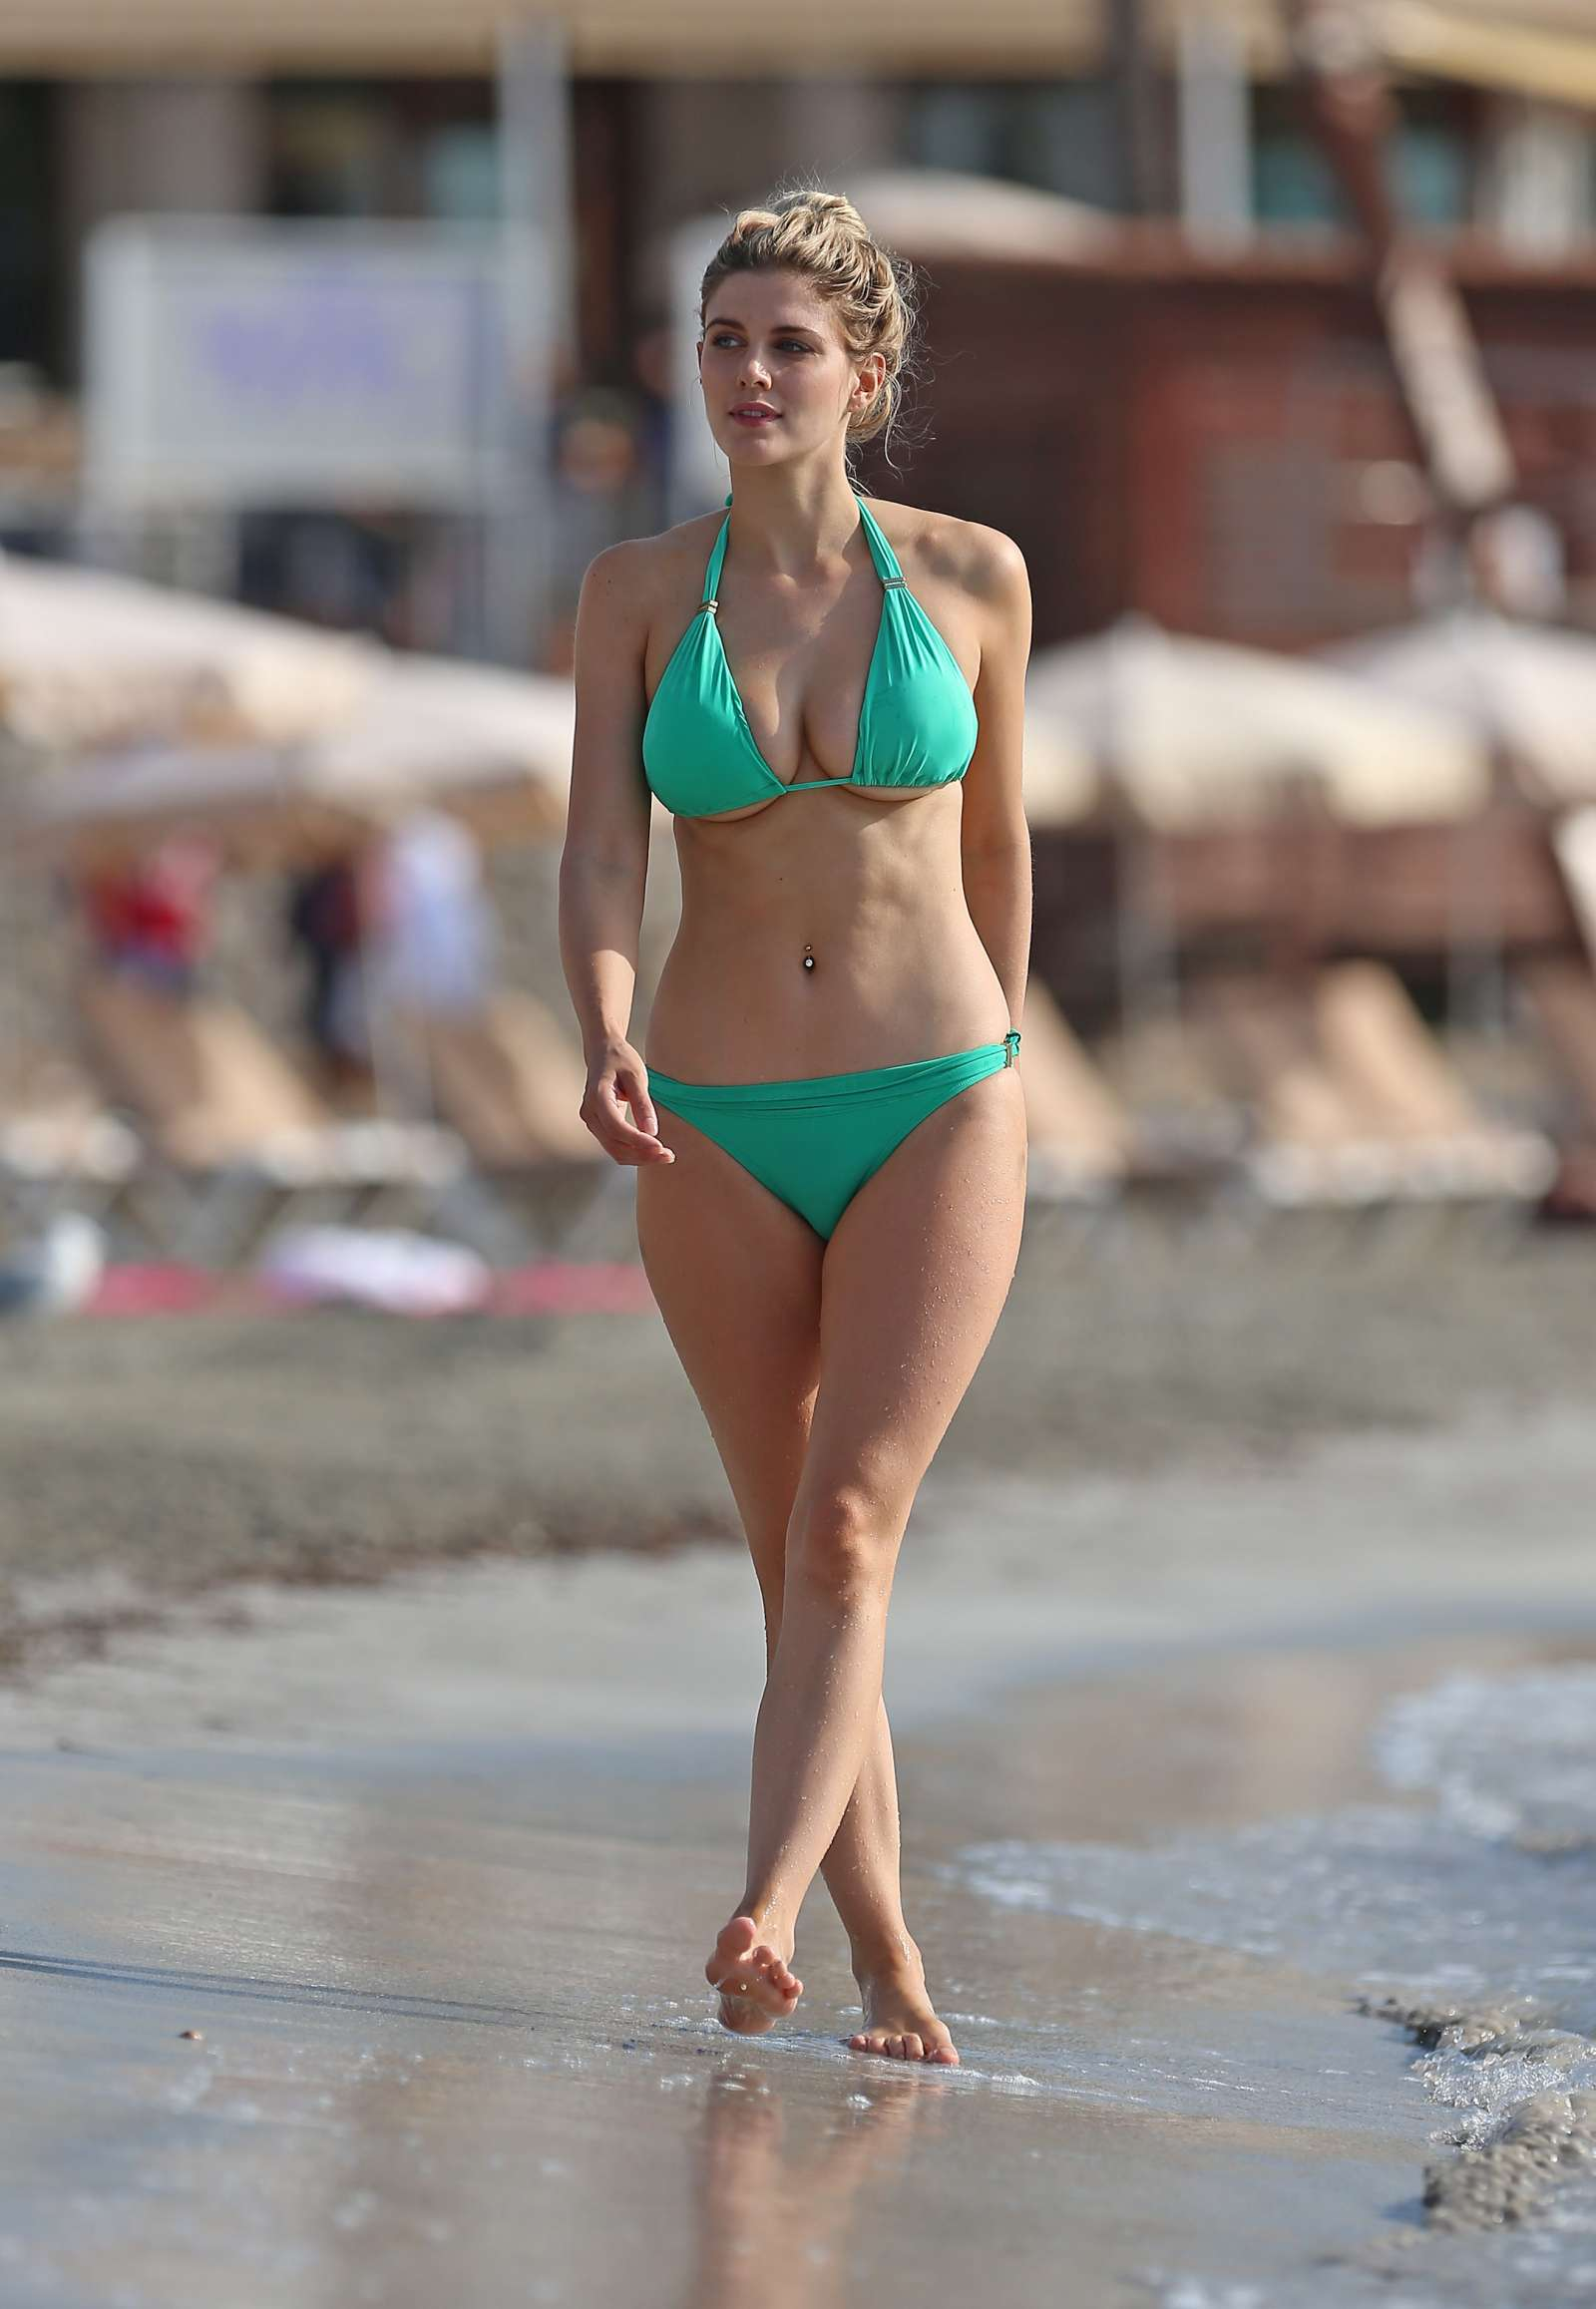 Ashley James in Bikini on the beach in Ibiza